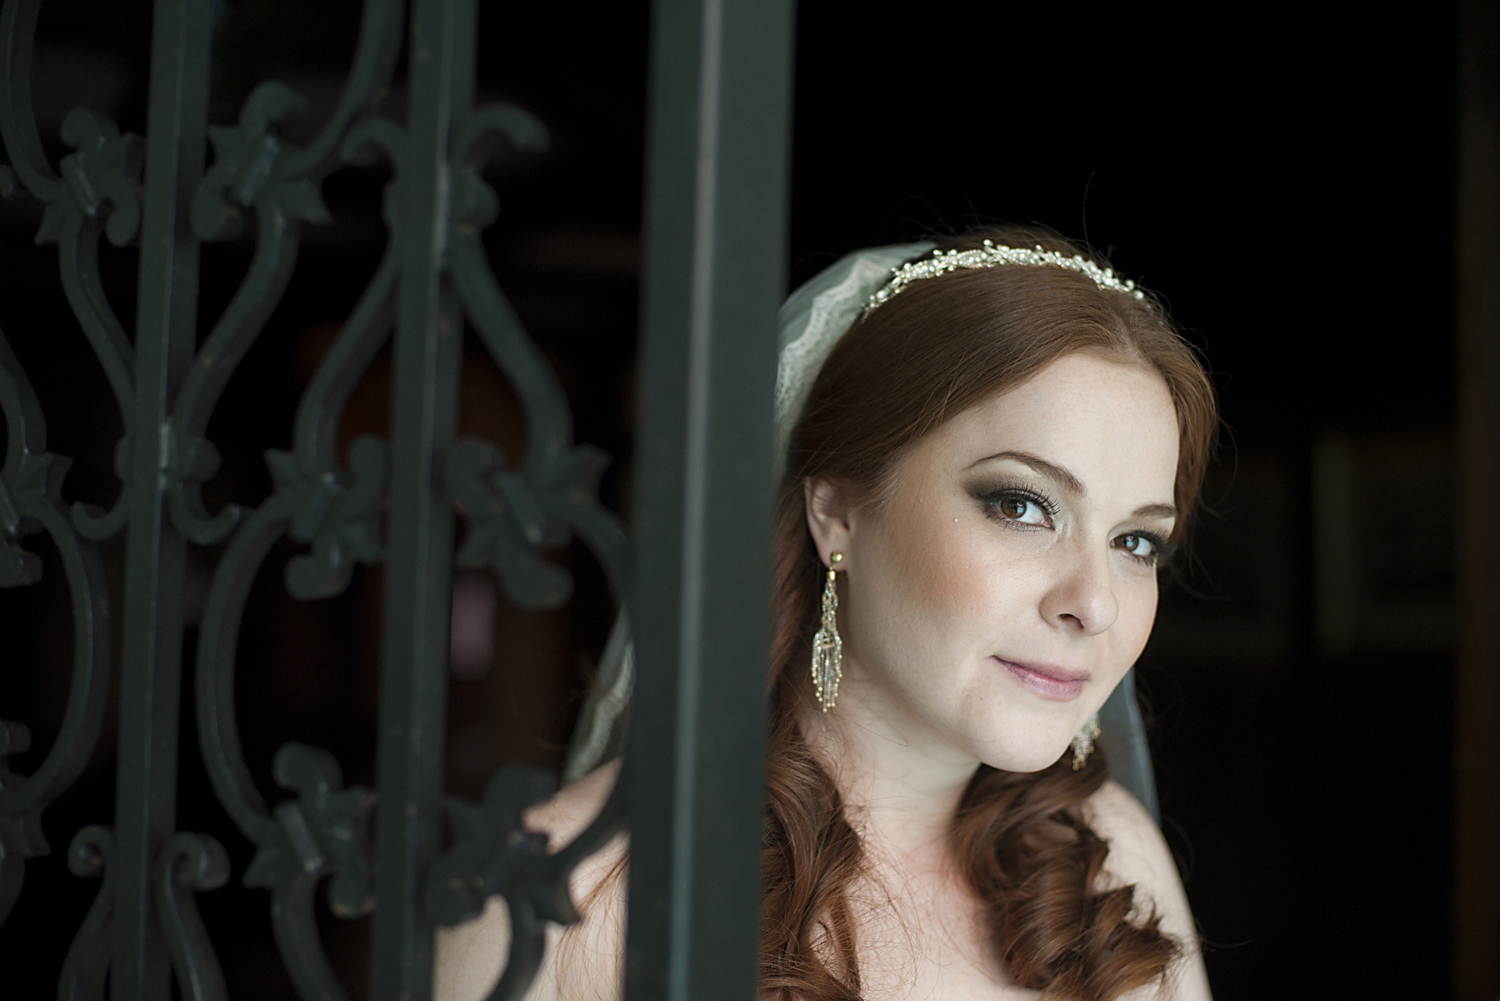 Bridal portrait at Pleasantdale Chateau. NJ wedding photos